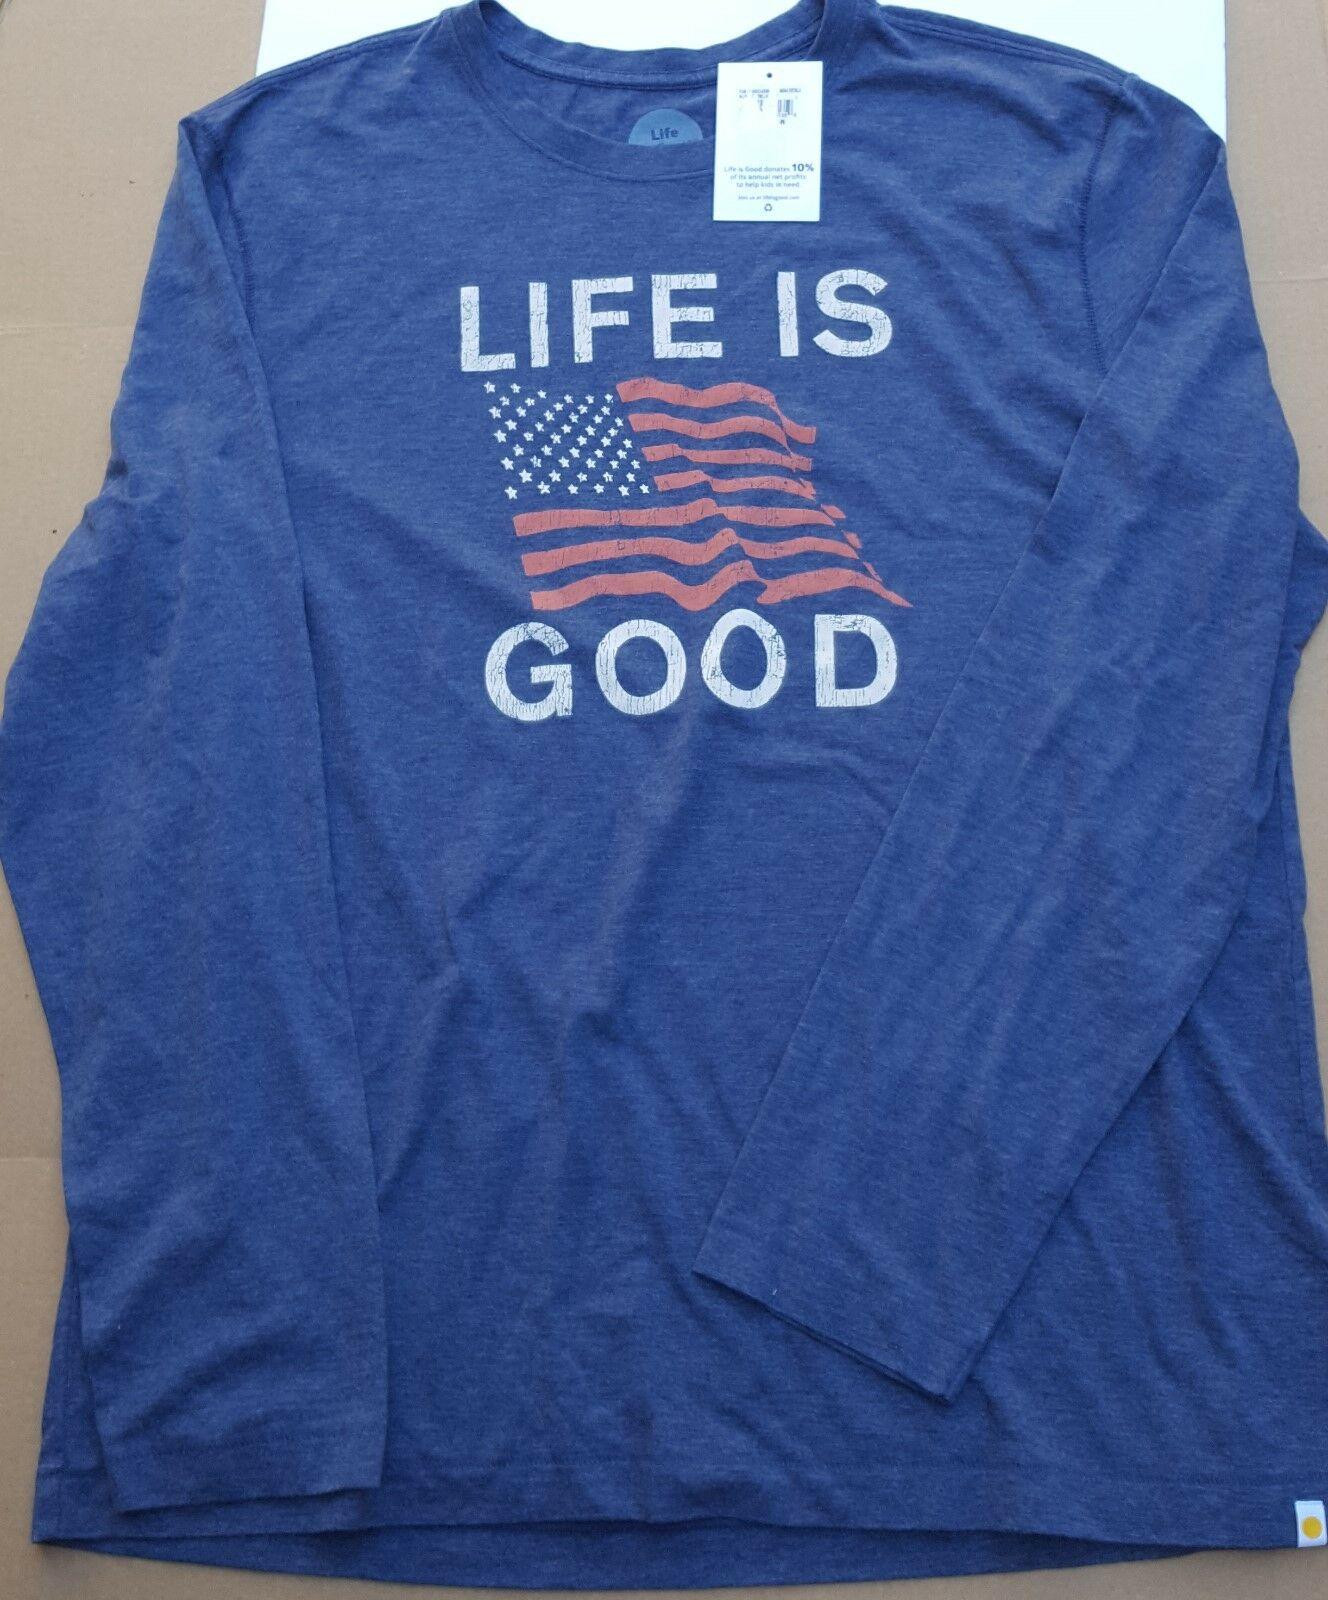 New Life is Good Mens Shirt Long Sleeve Patriot blueee AMERICAN Flag Stars L USA